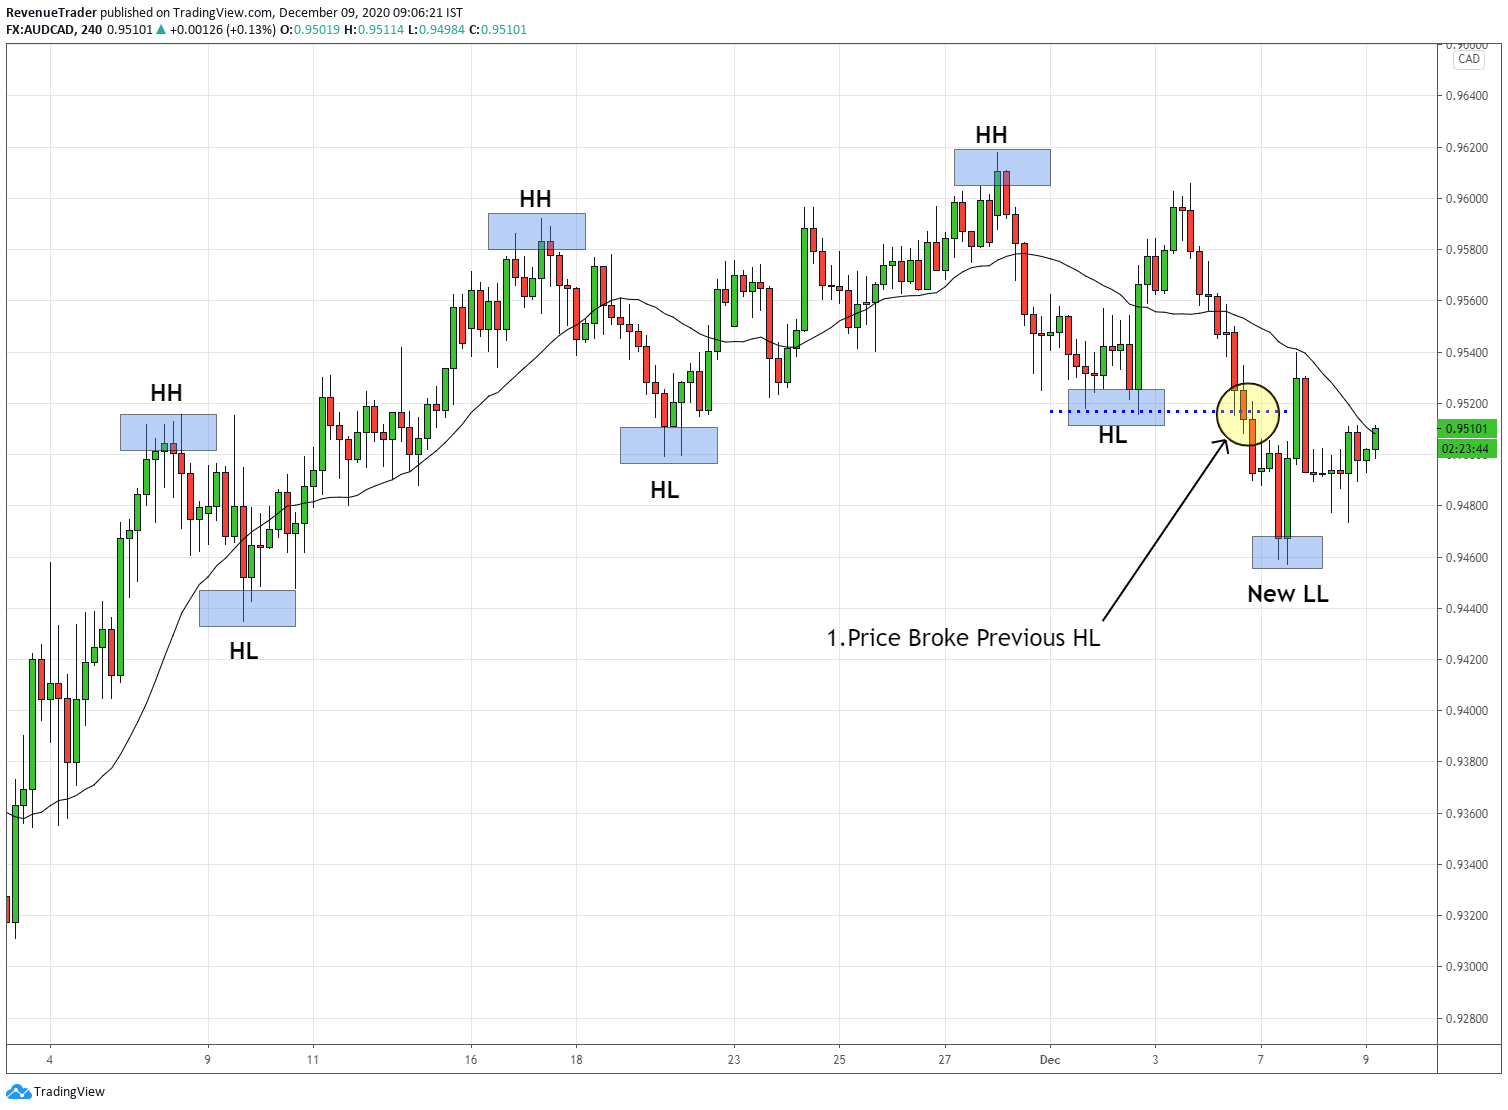 break of a previoud higher low indicating the whole fundemental of the uptrend is going to change